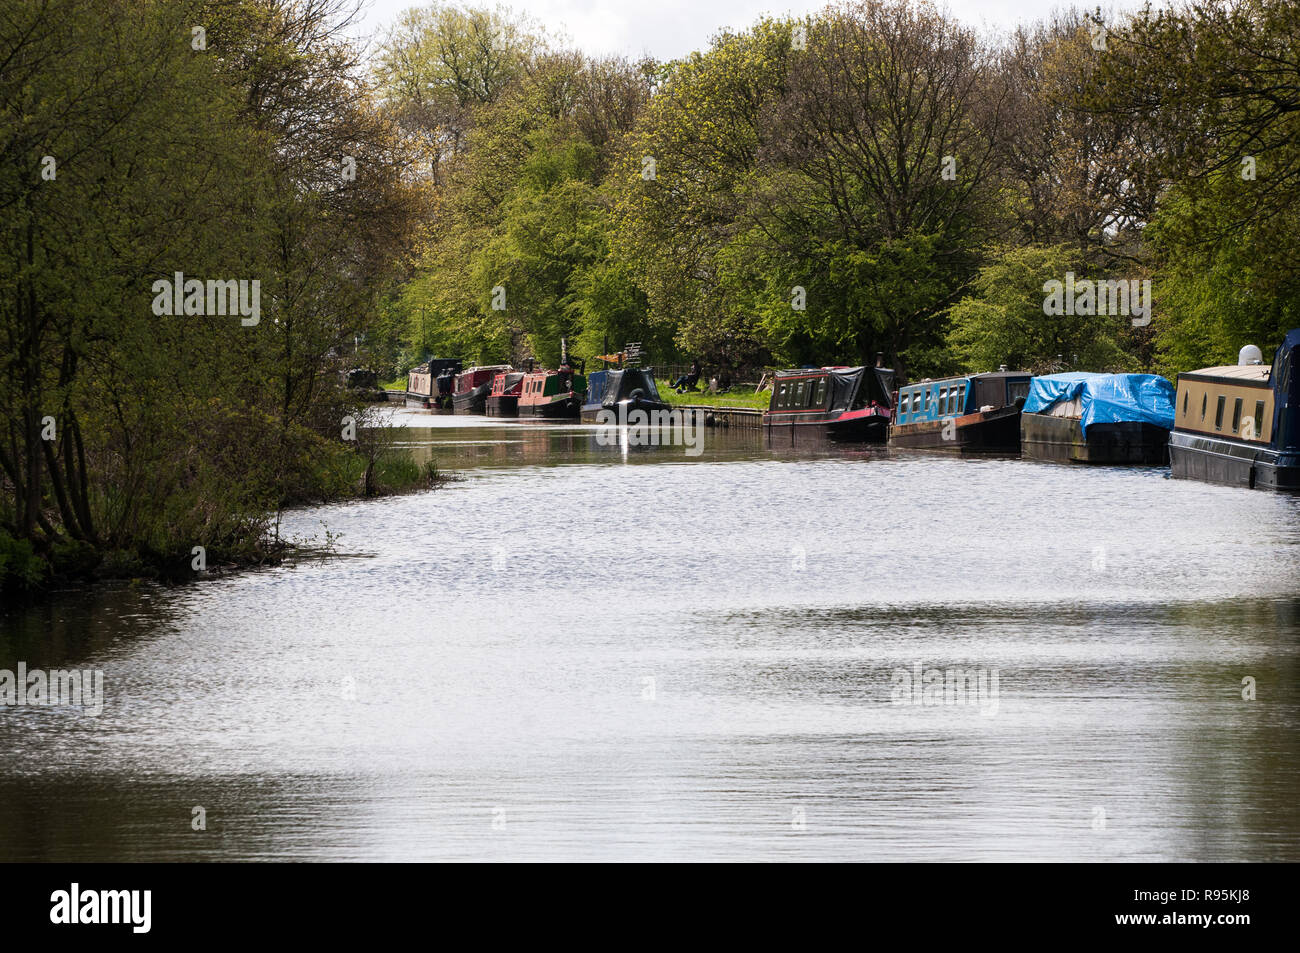 Views of Leeds Liverpool Canal - Stock Image